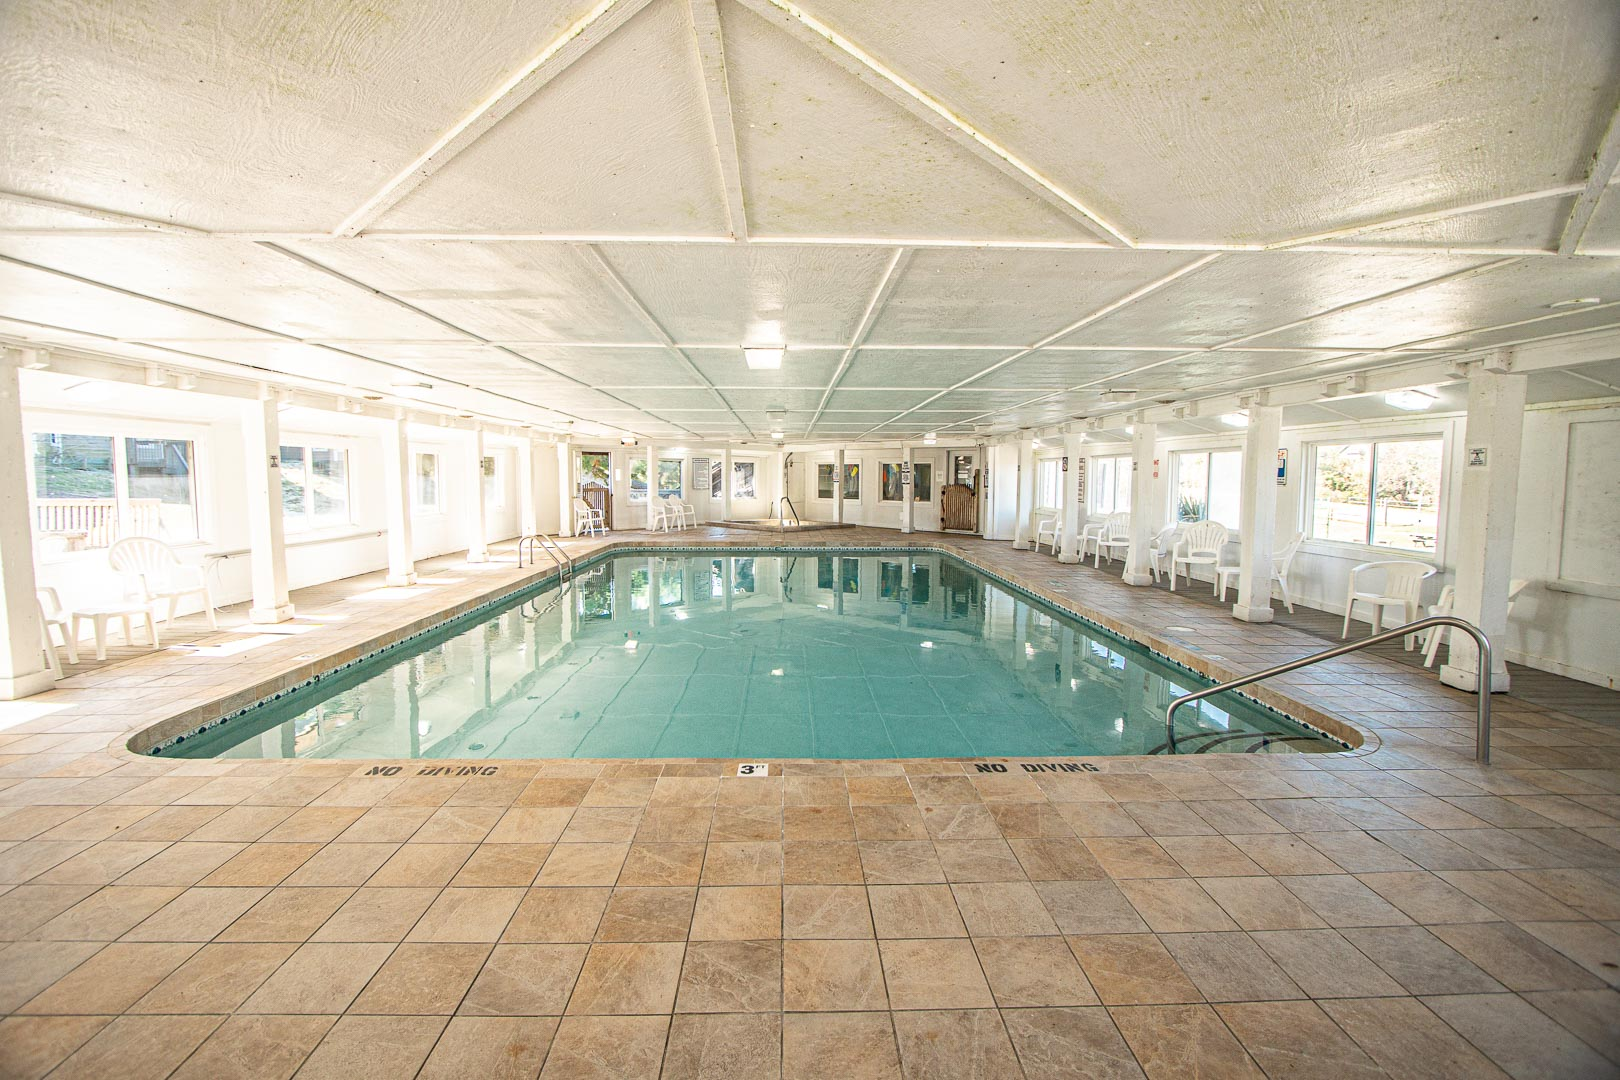 An expansive indoor swimming pool at VRI's Barrier Island Station in North Carolina.